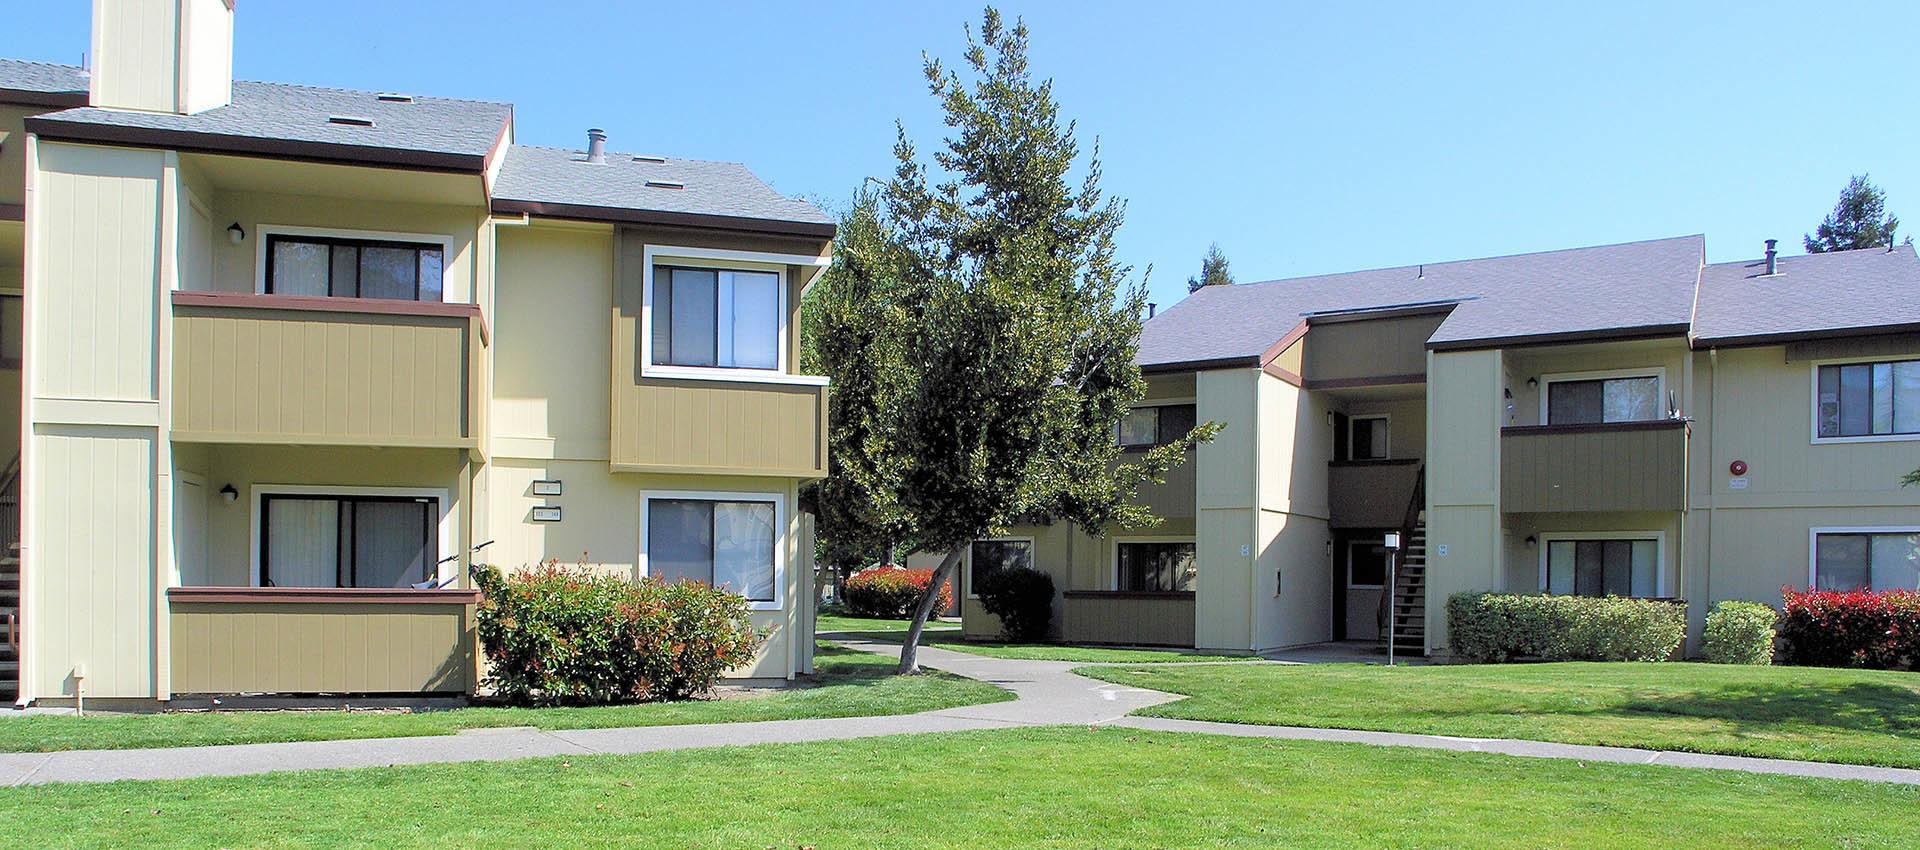 The grounds at apartments in Rohnert Park, CA